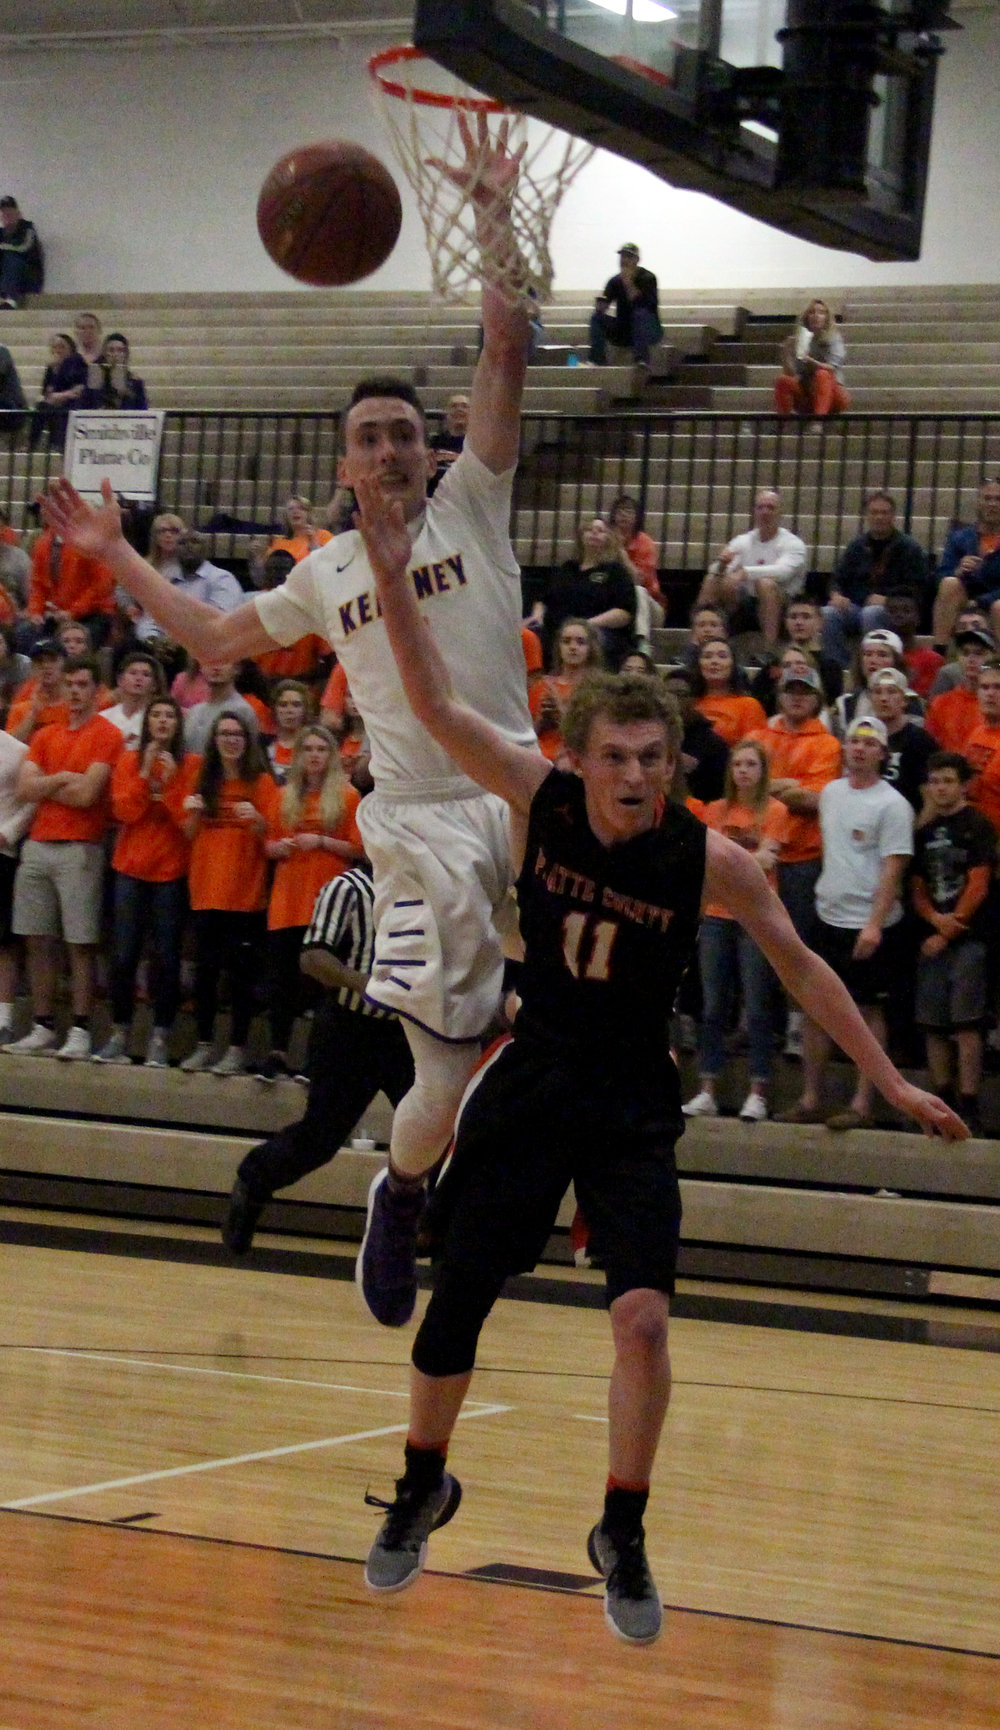 ROSS MARTIN/Citizen photo Platte County junior JP Post (11) takes a foul from Kearney senior Dylan Ritz late in the second half of the Class 4 District 15 title game Saturday, March 4 in Excelsior Springs, Mo.